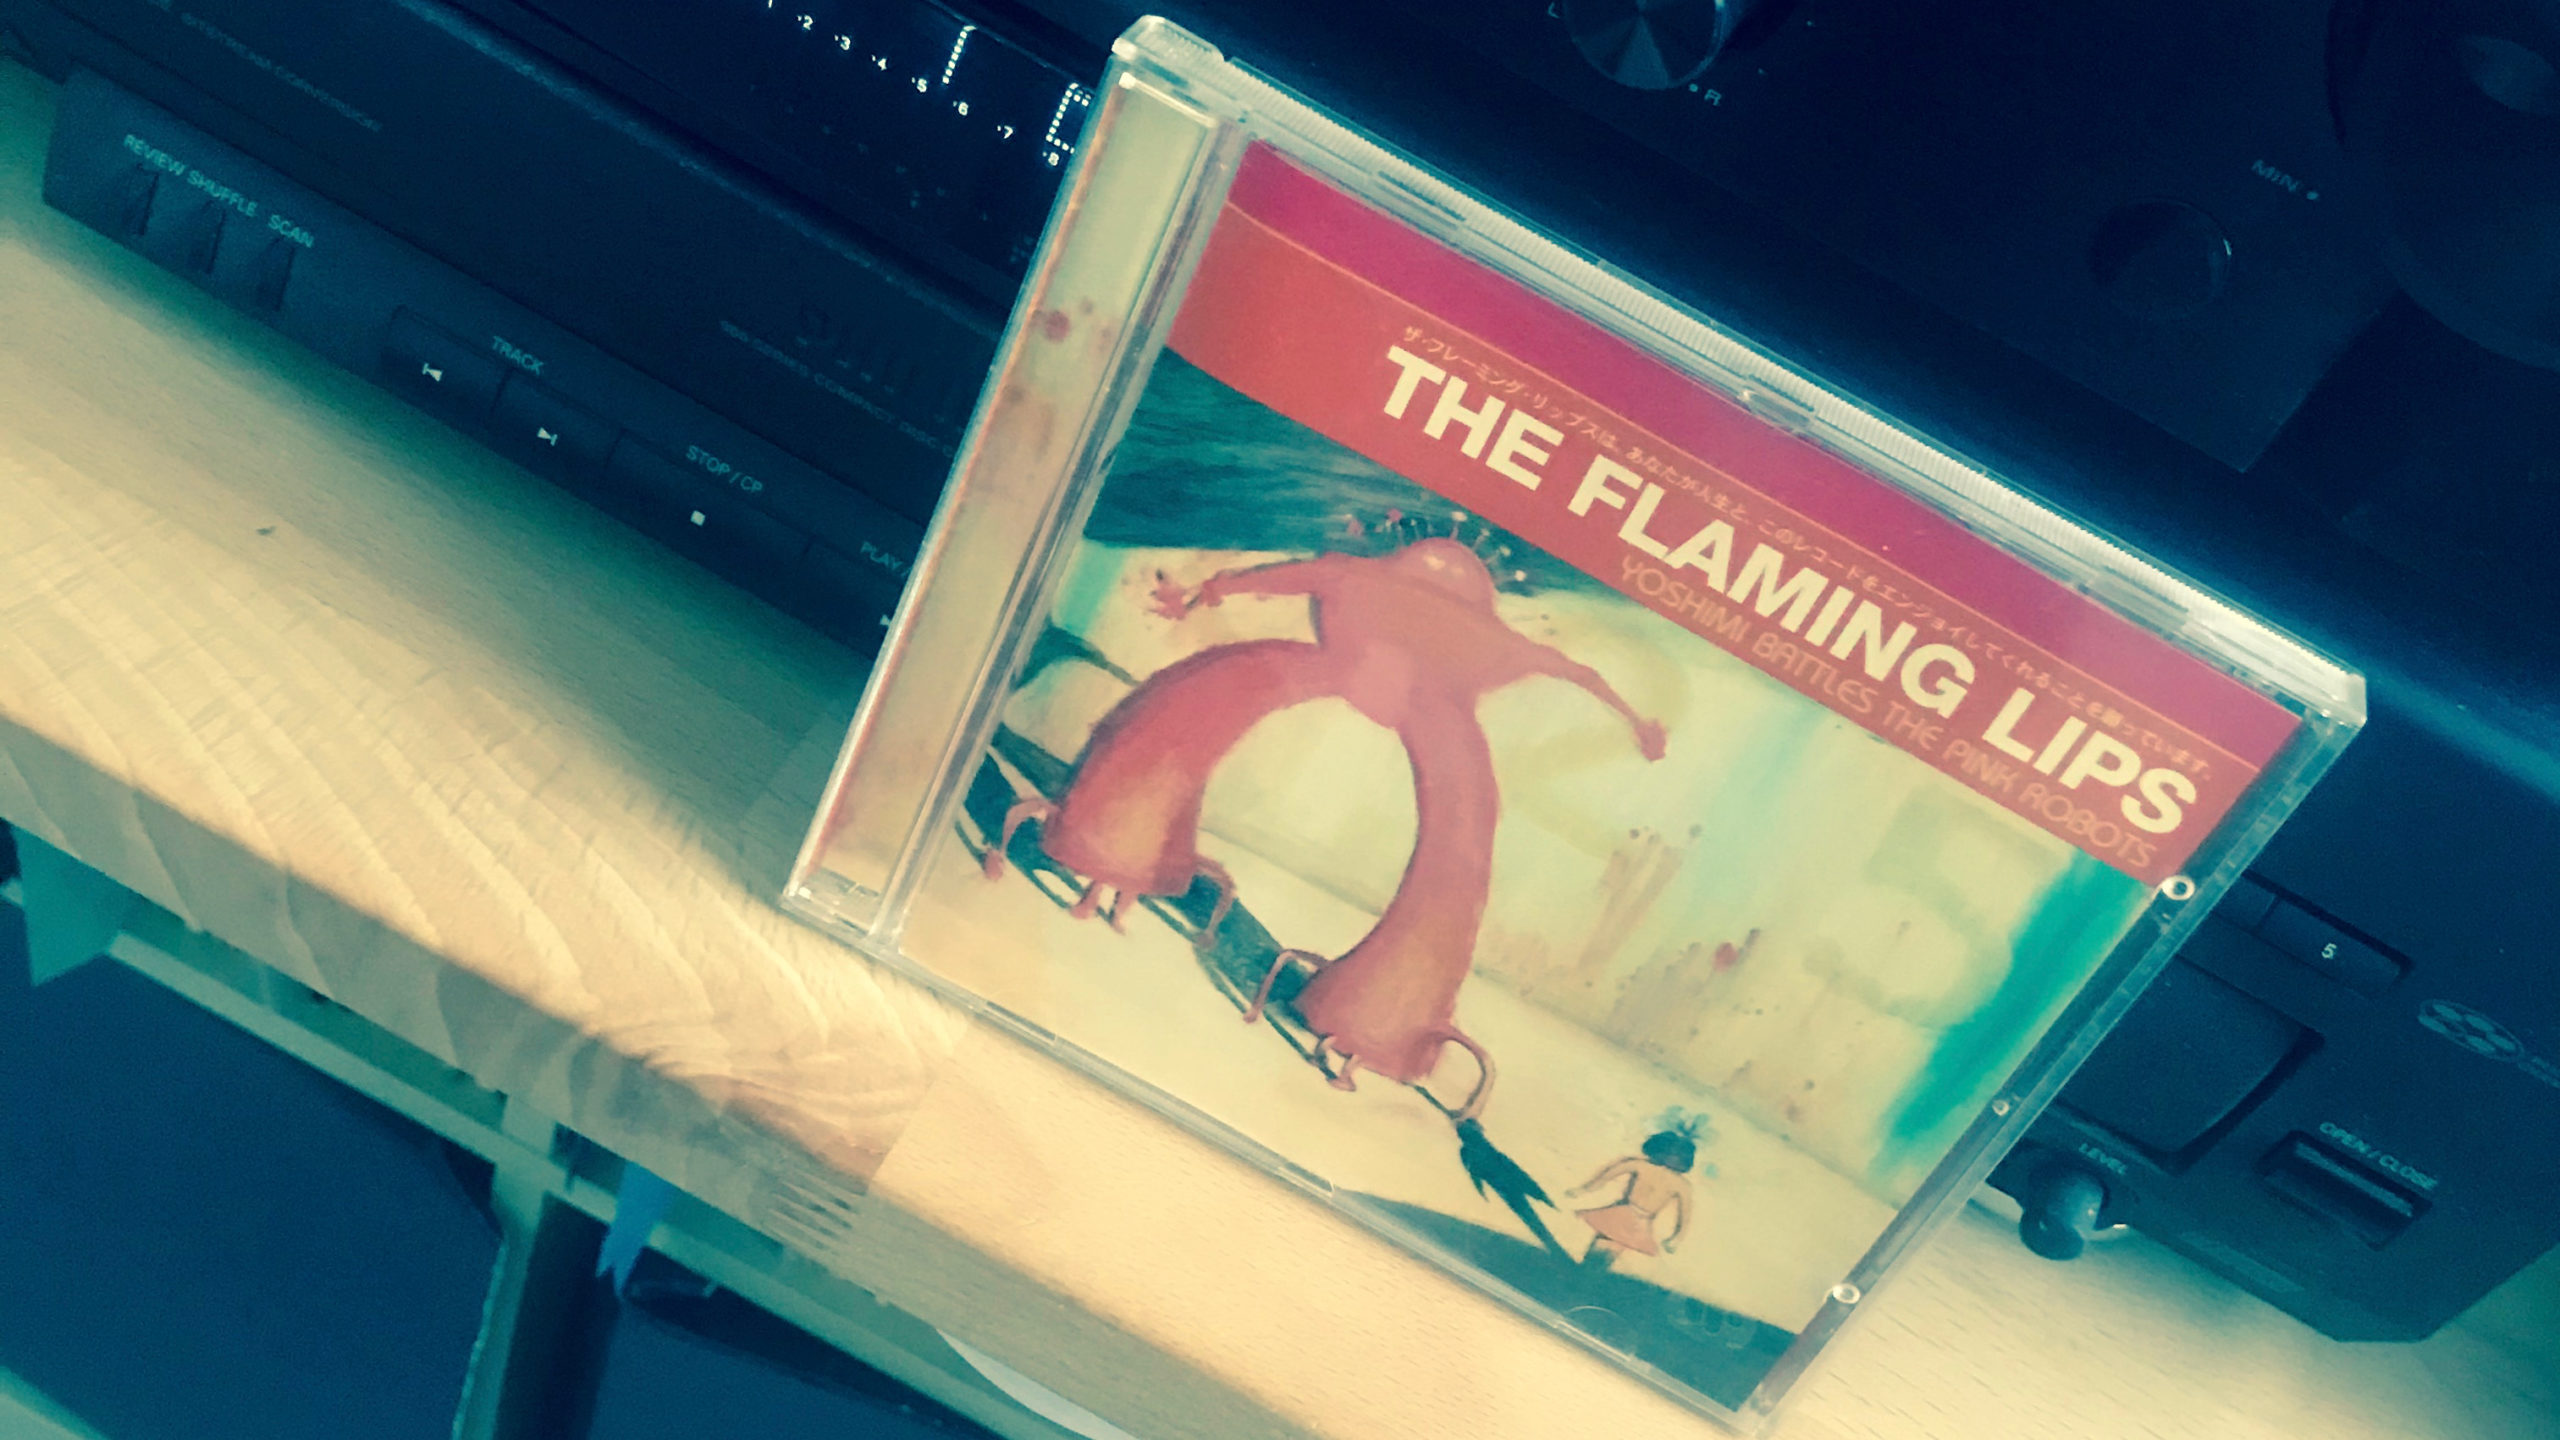 Jour 48, J-8 – The Flaming Lips